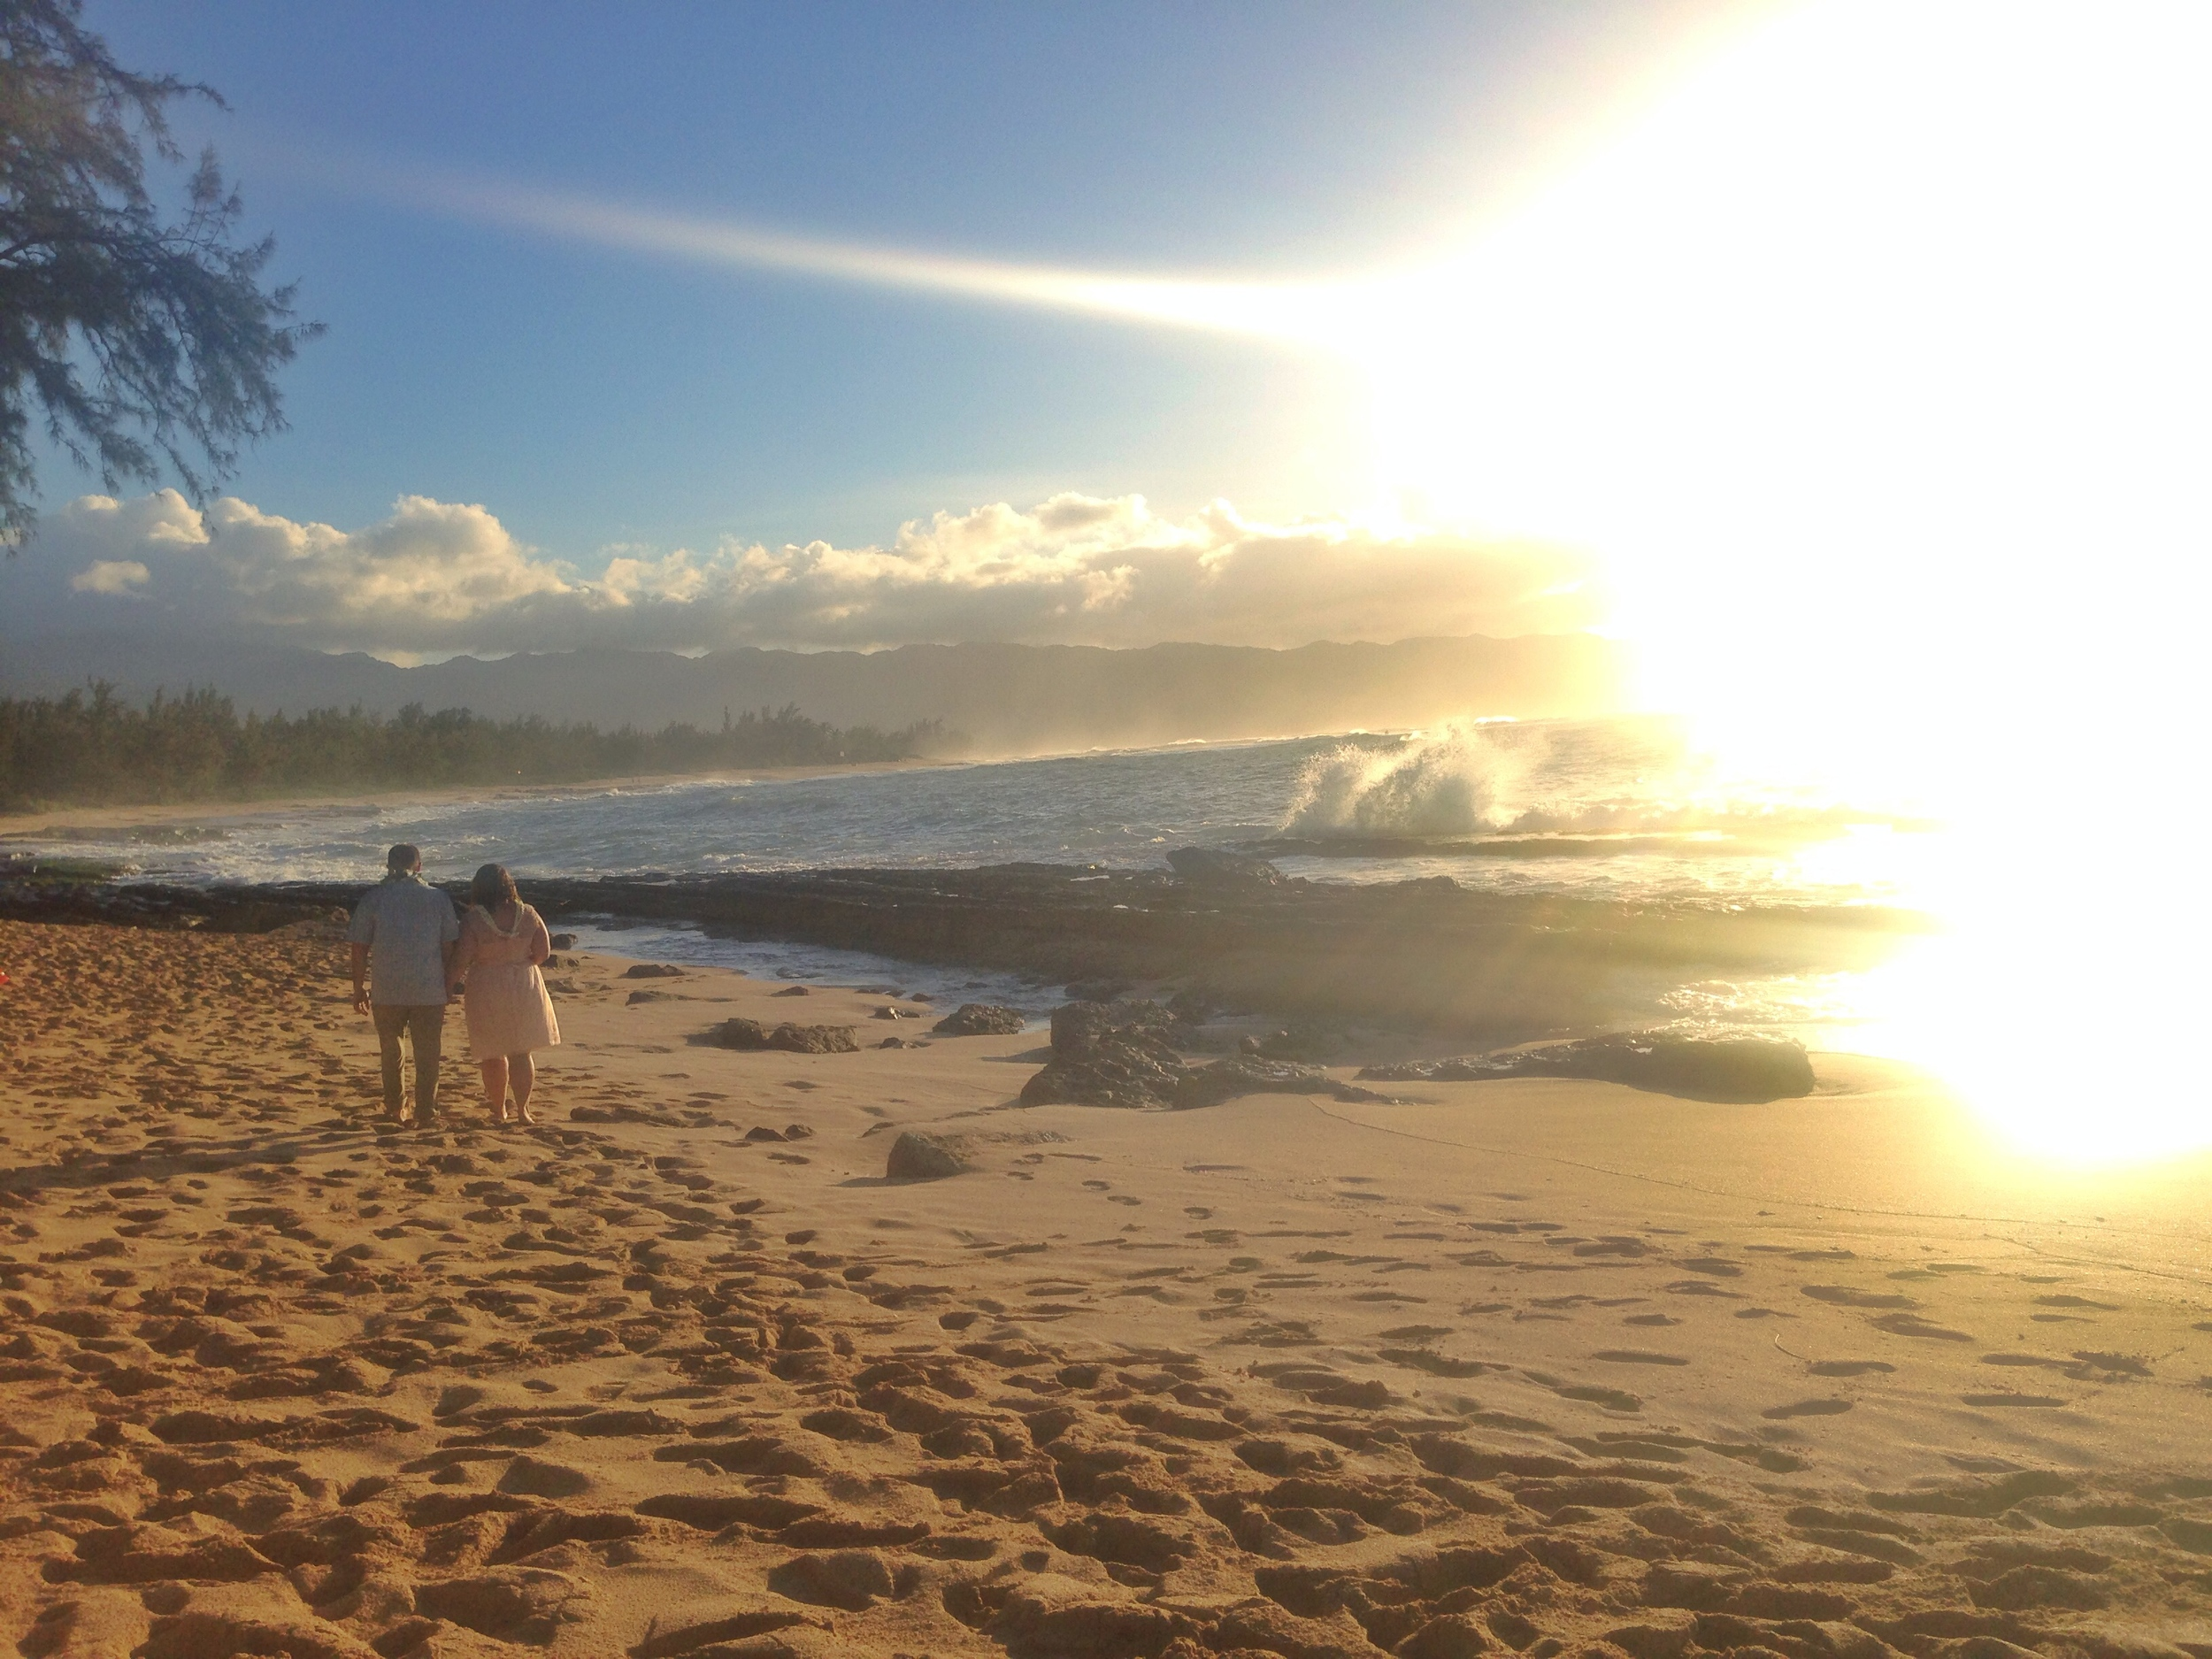 jacqueline-caleb-sunset-hawaii-wedding